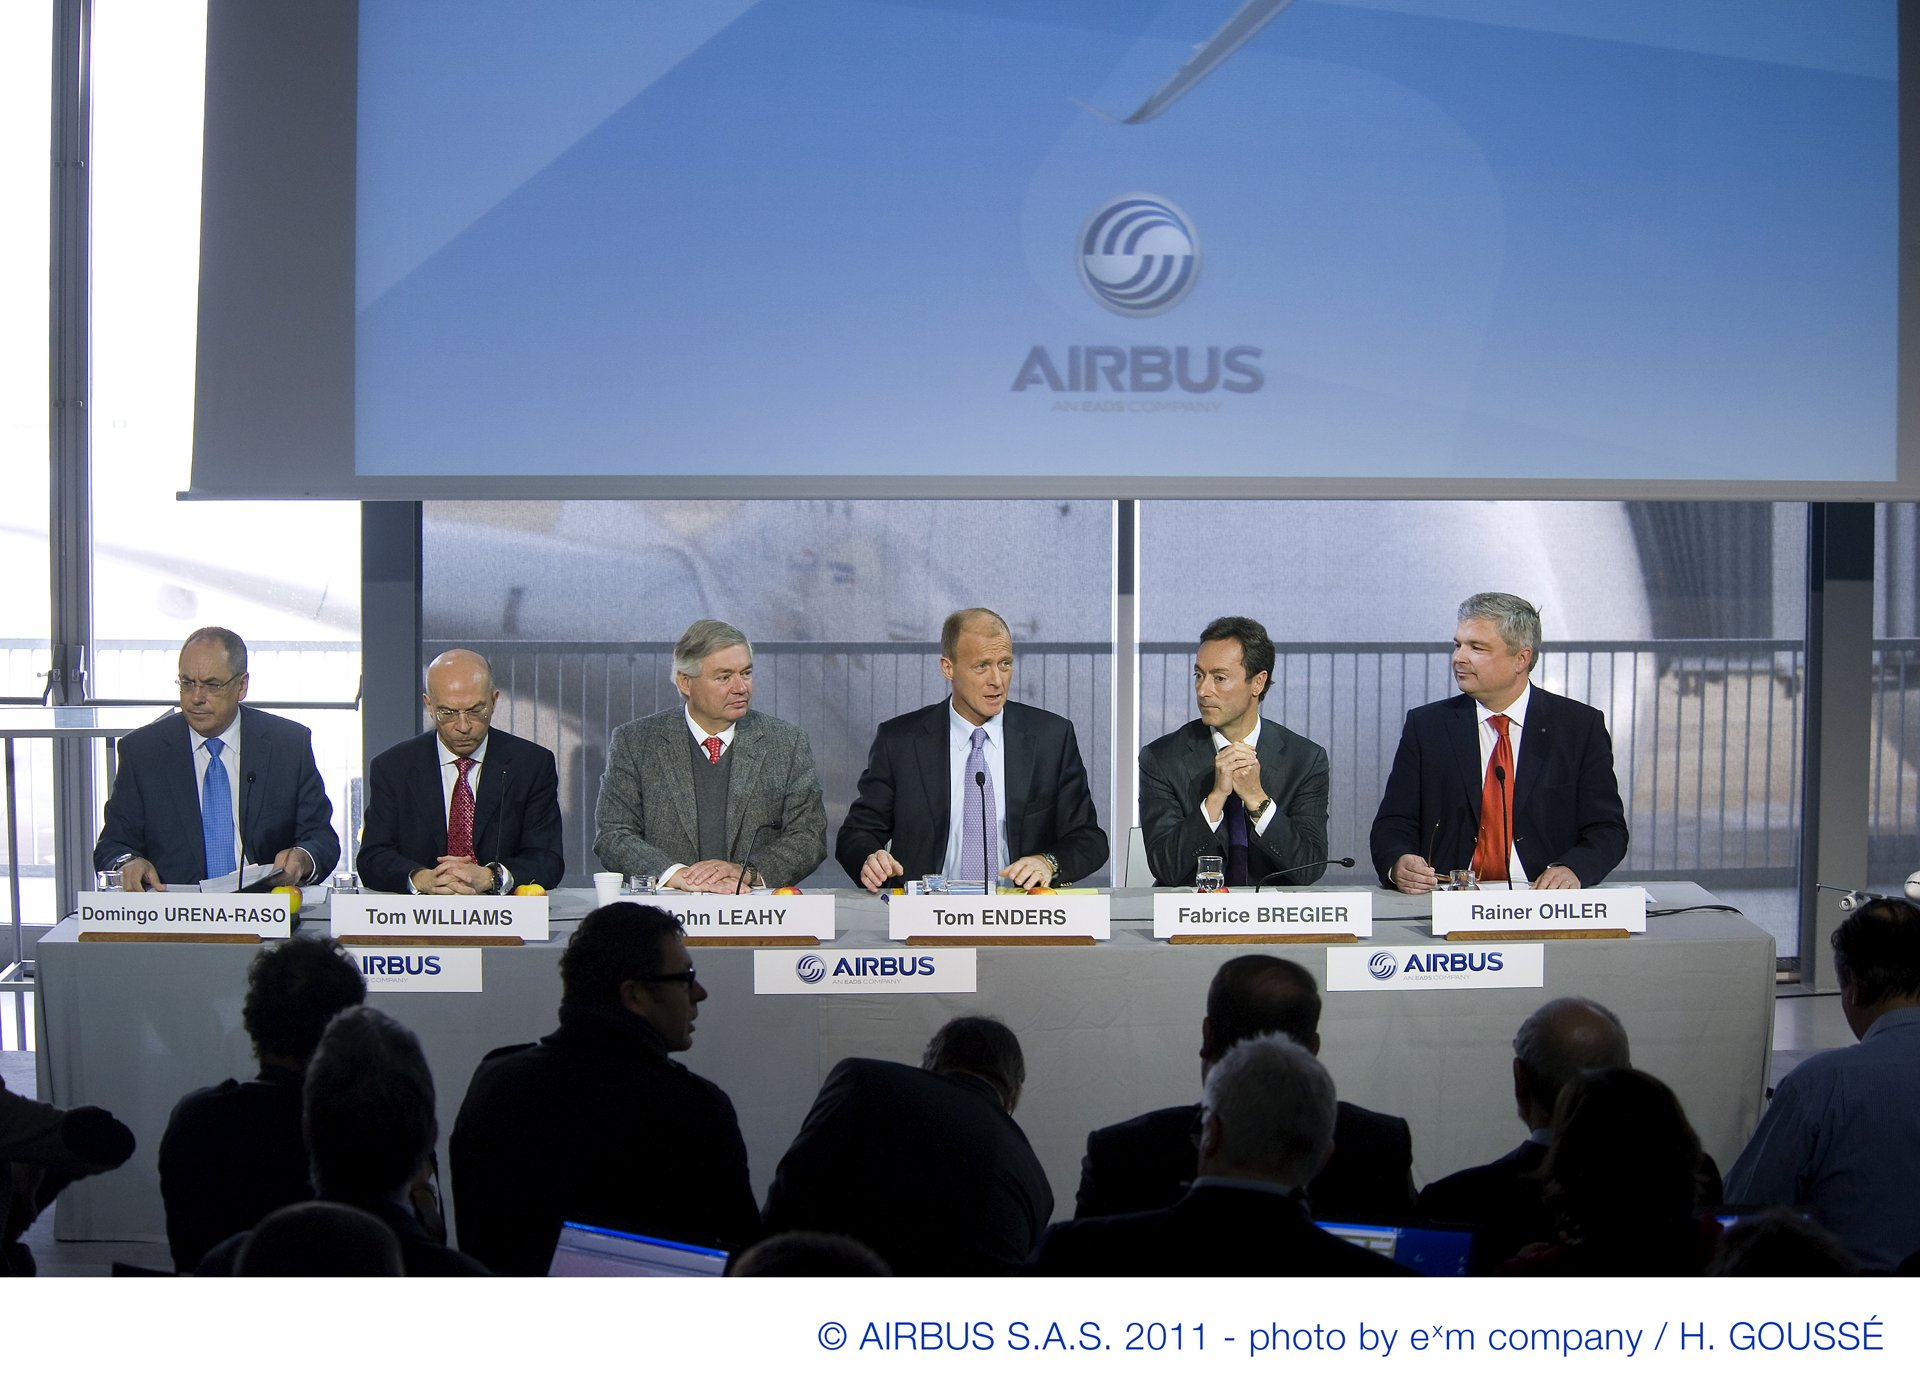 At its annual press conference held today in Toulouse, France, Airbus announced new record aircraft deliveries in 2010 with 510 commercial aircraft delivered to 94 customers, of which 19 were new (17 Jan 2011)